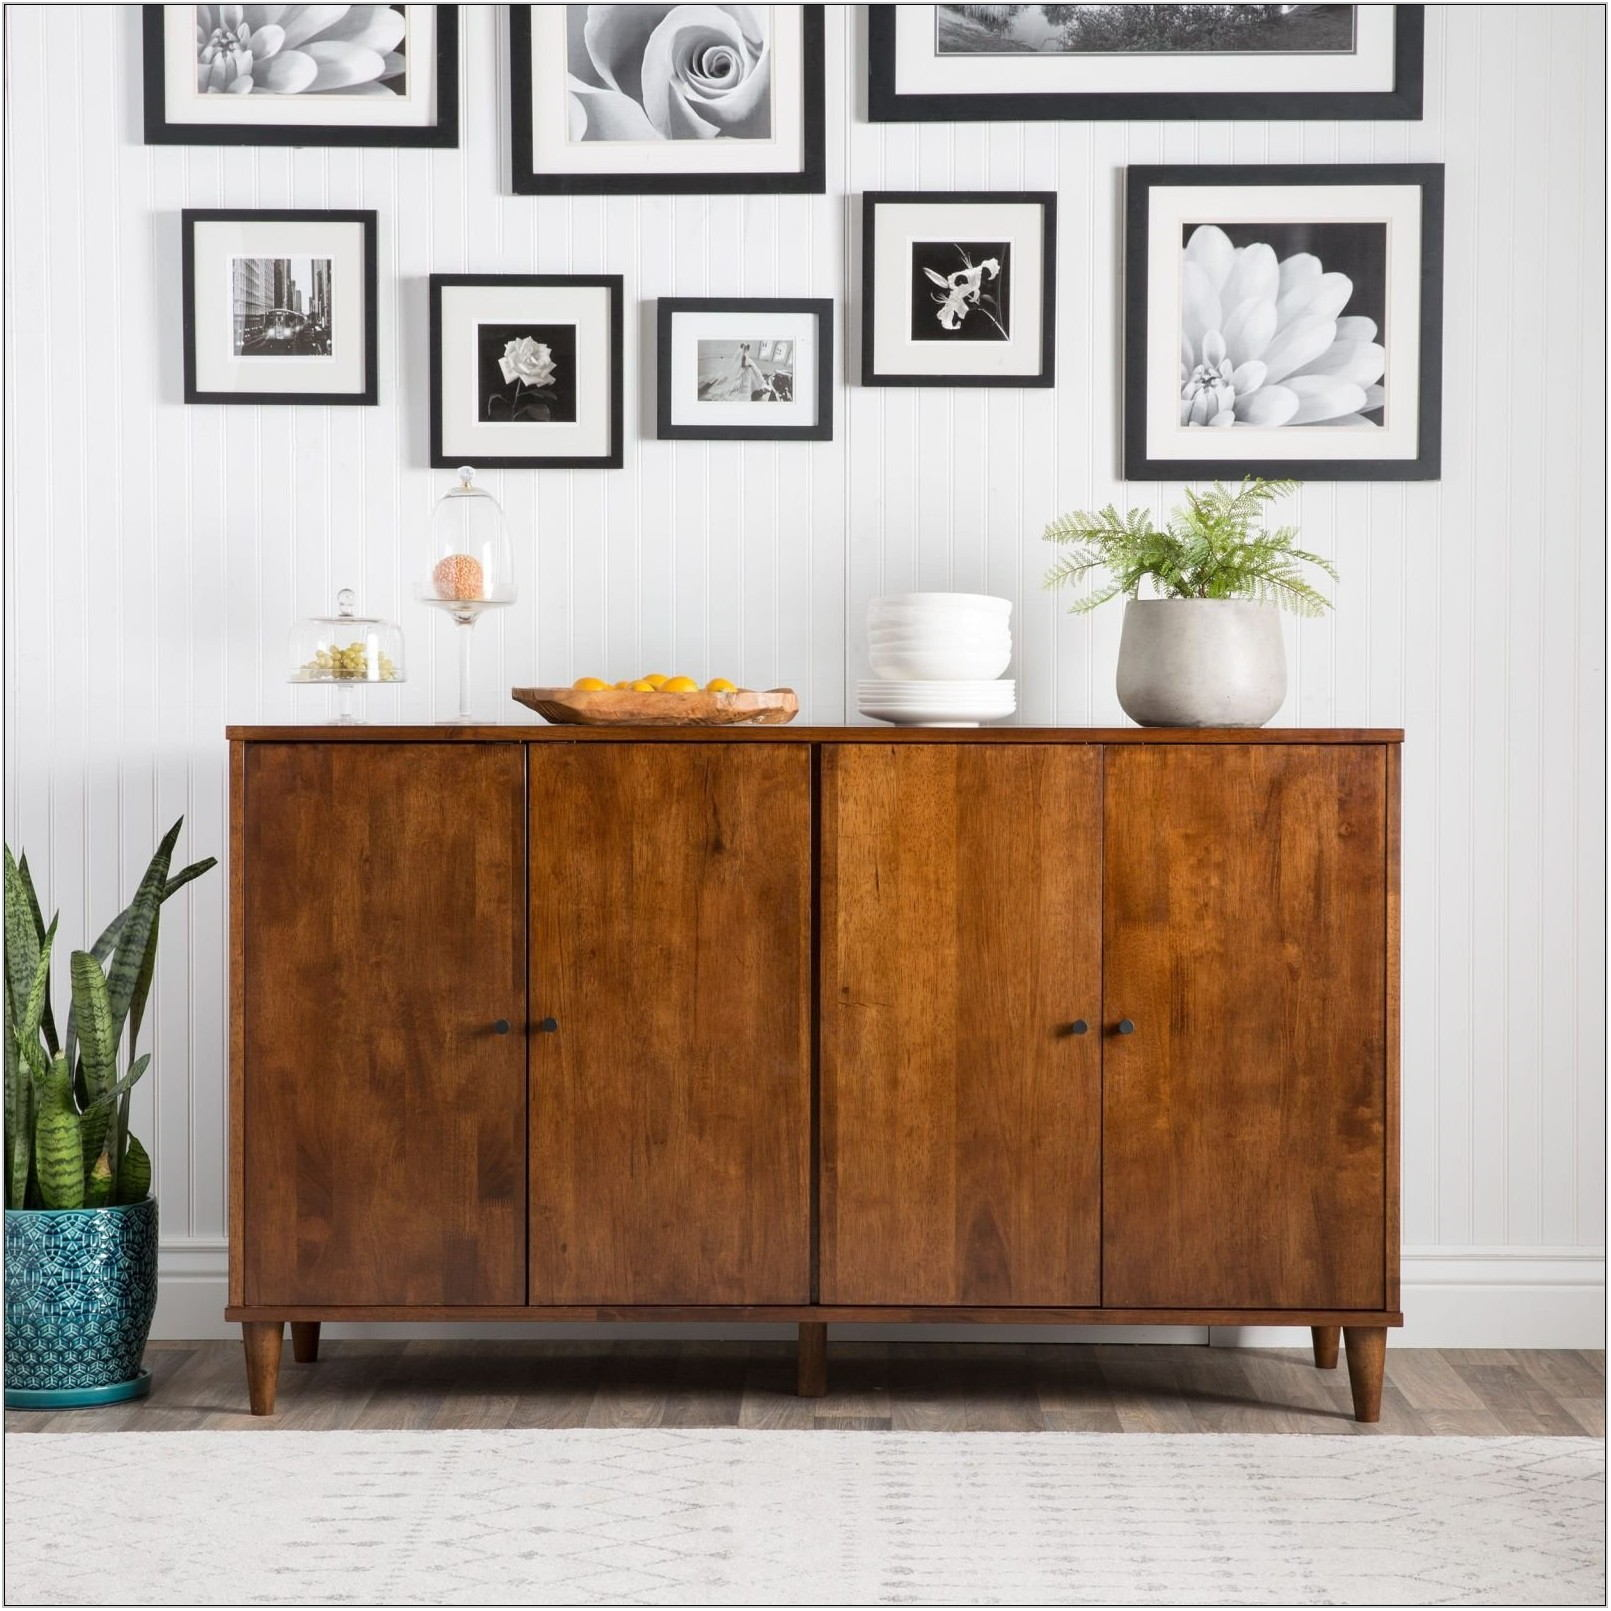 Living Room Buffet Cabinet